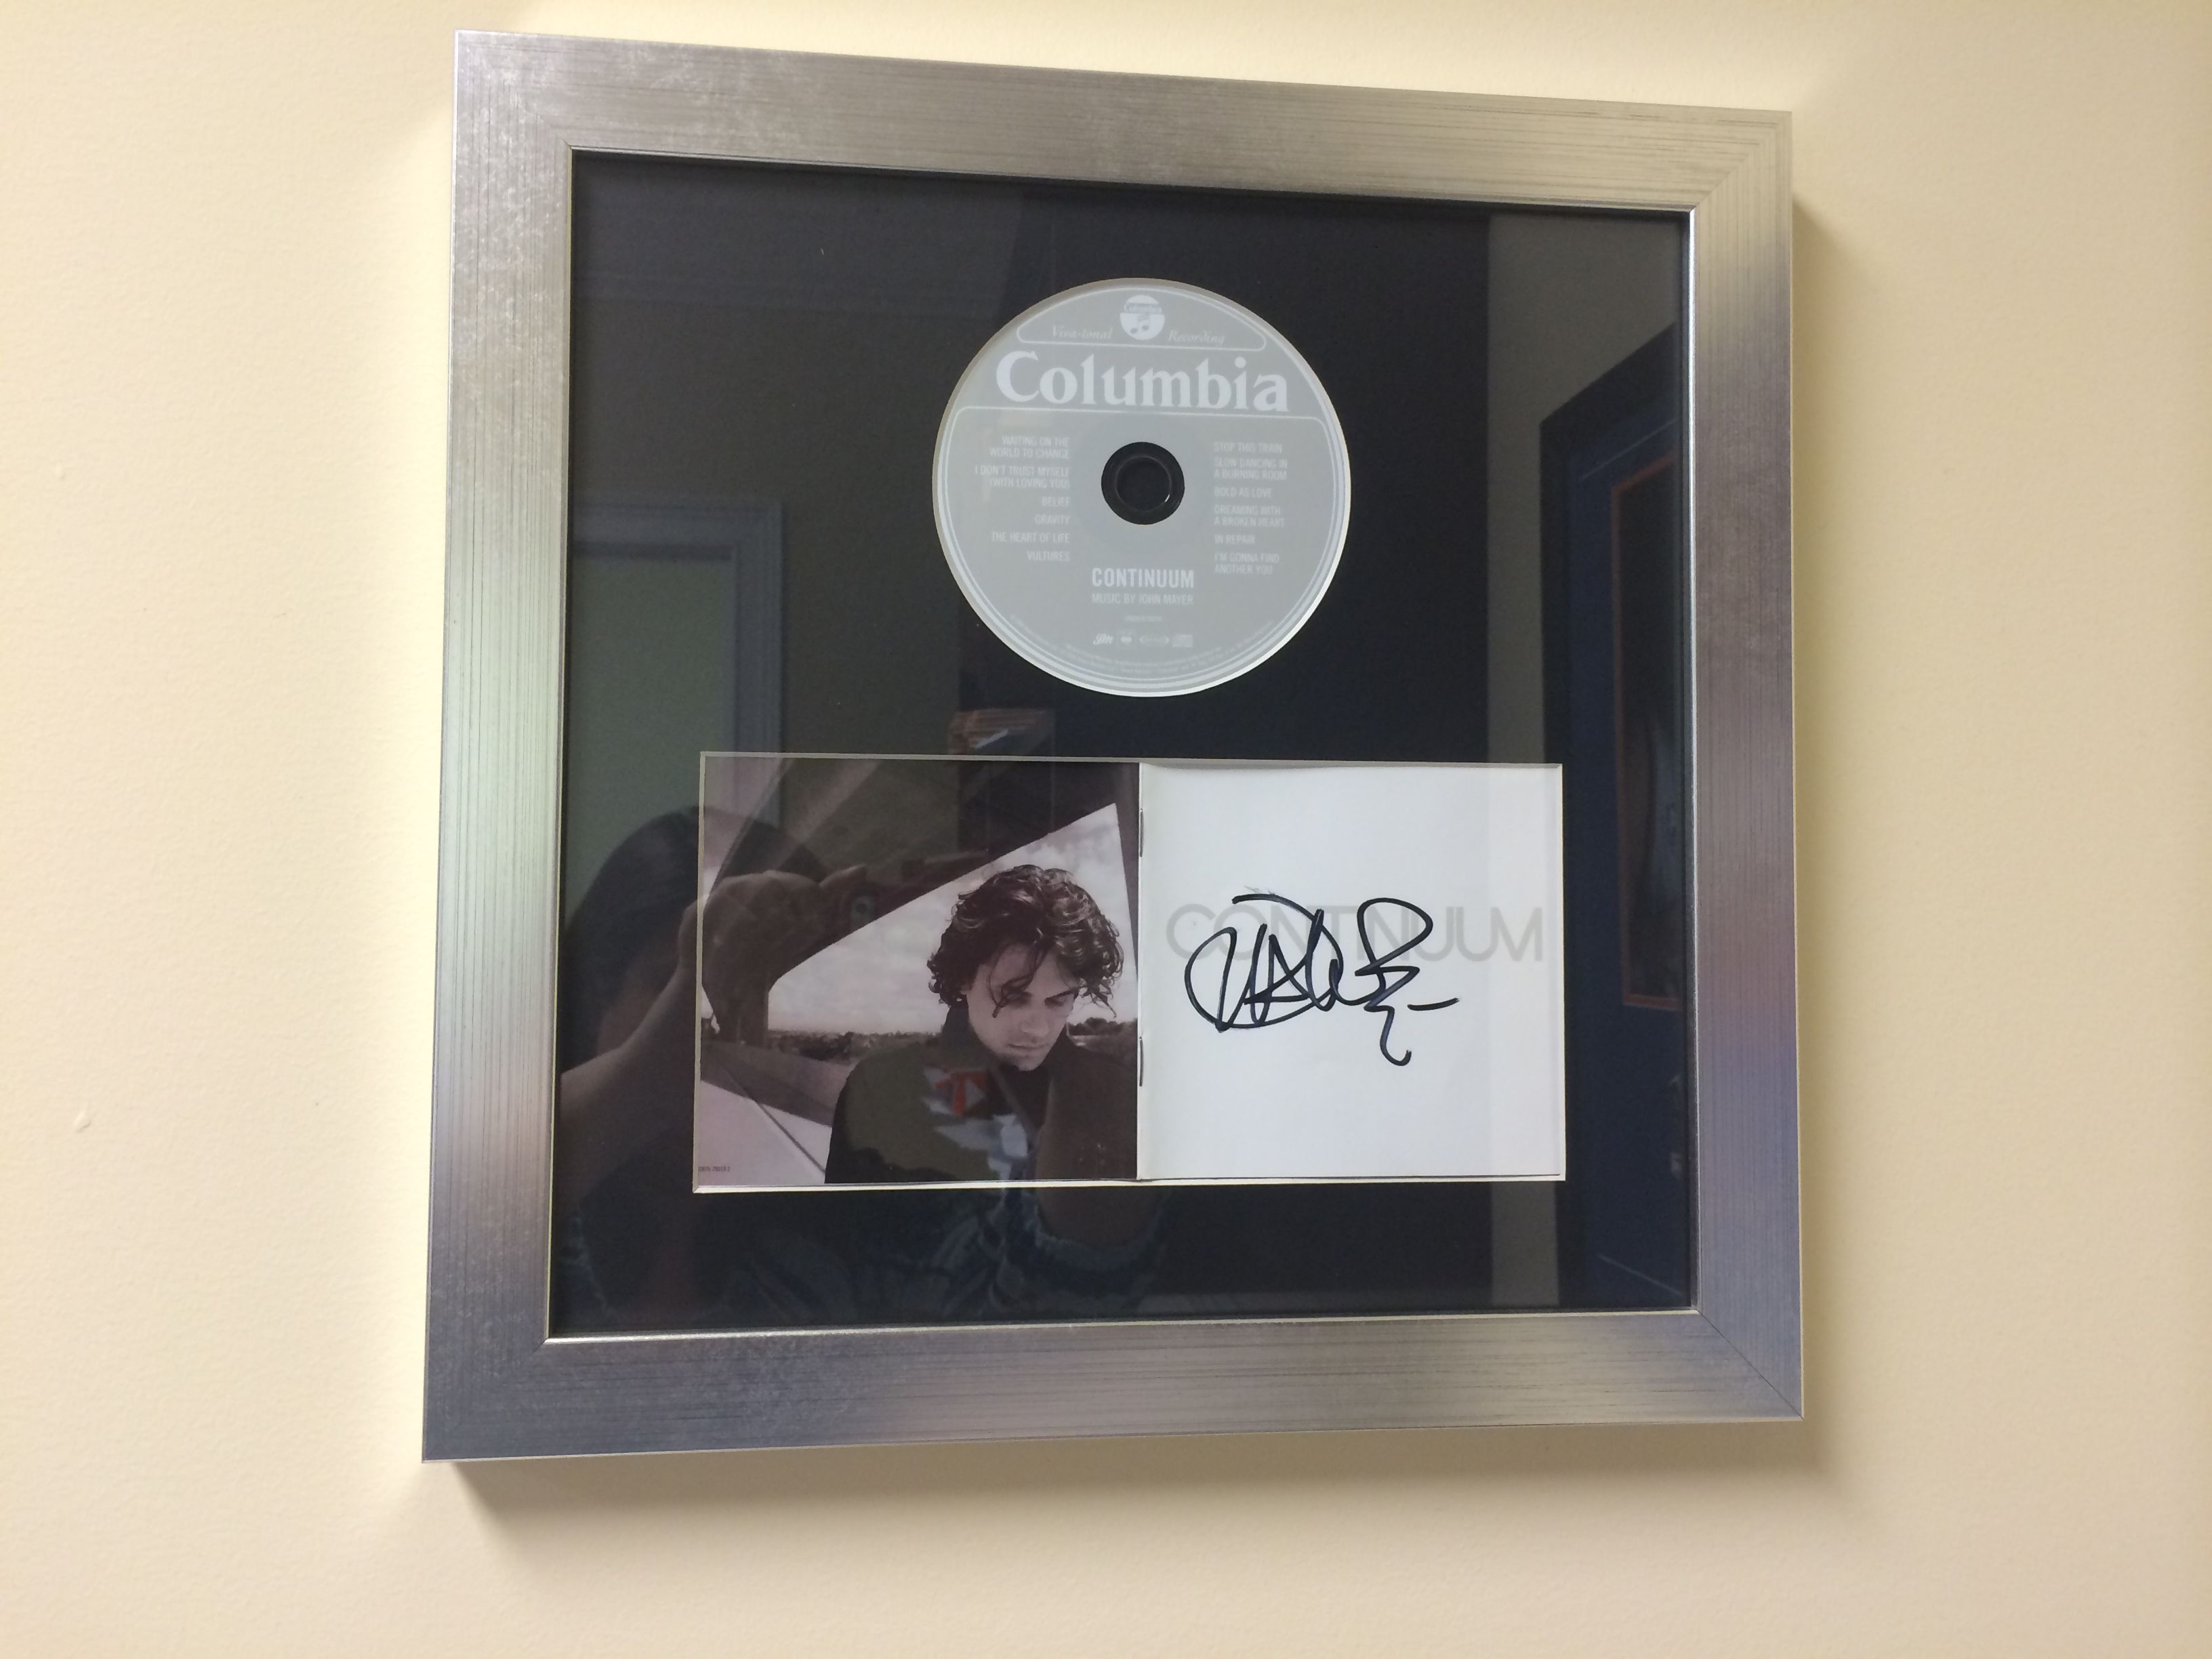 Cool Way To Frame Your Old Cds And Autographed Albums